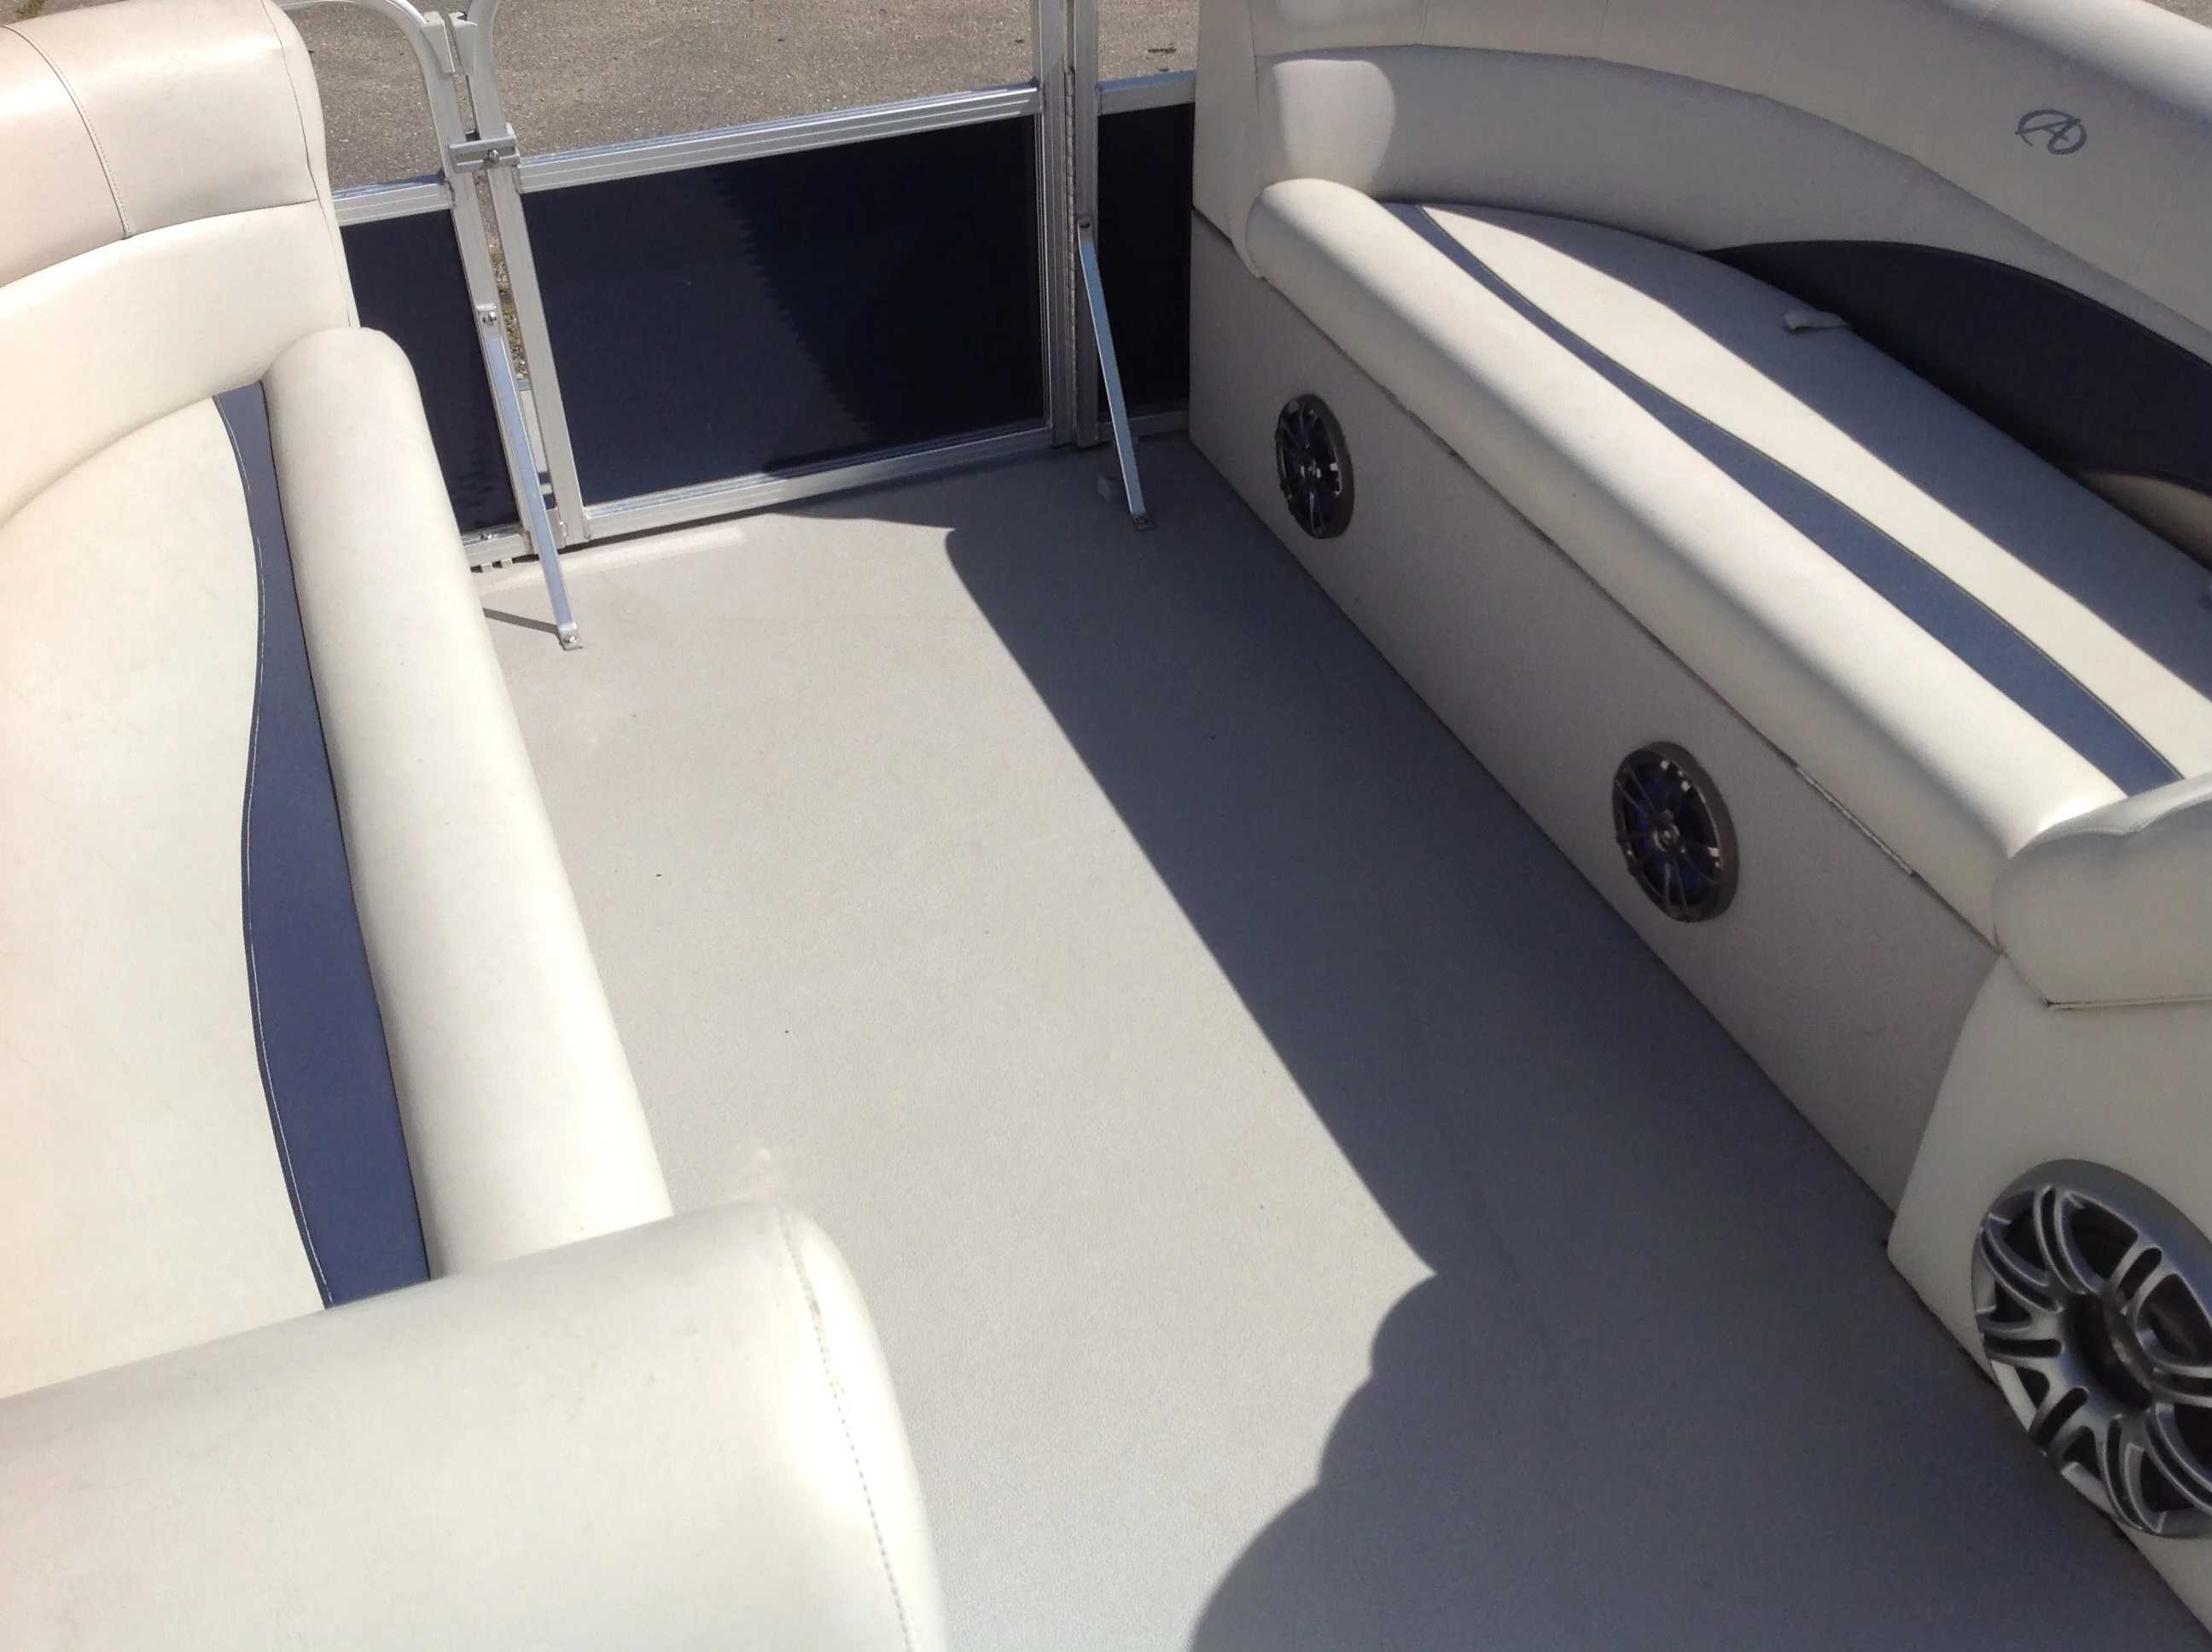 2012 Avalon boat for sale, model of the boat is Catalina Drl 2485 & Image # 4 of 14